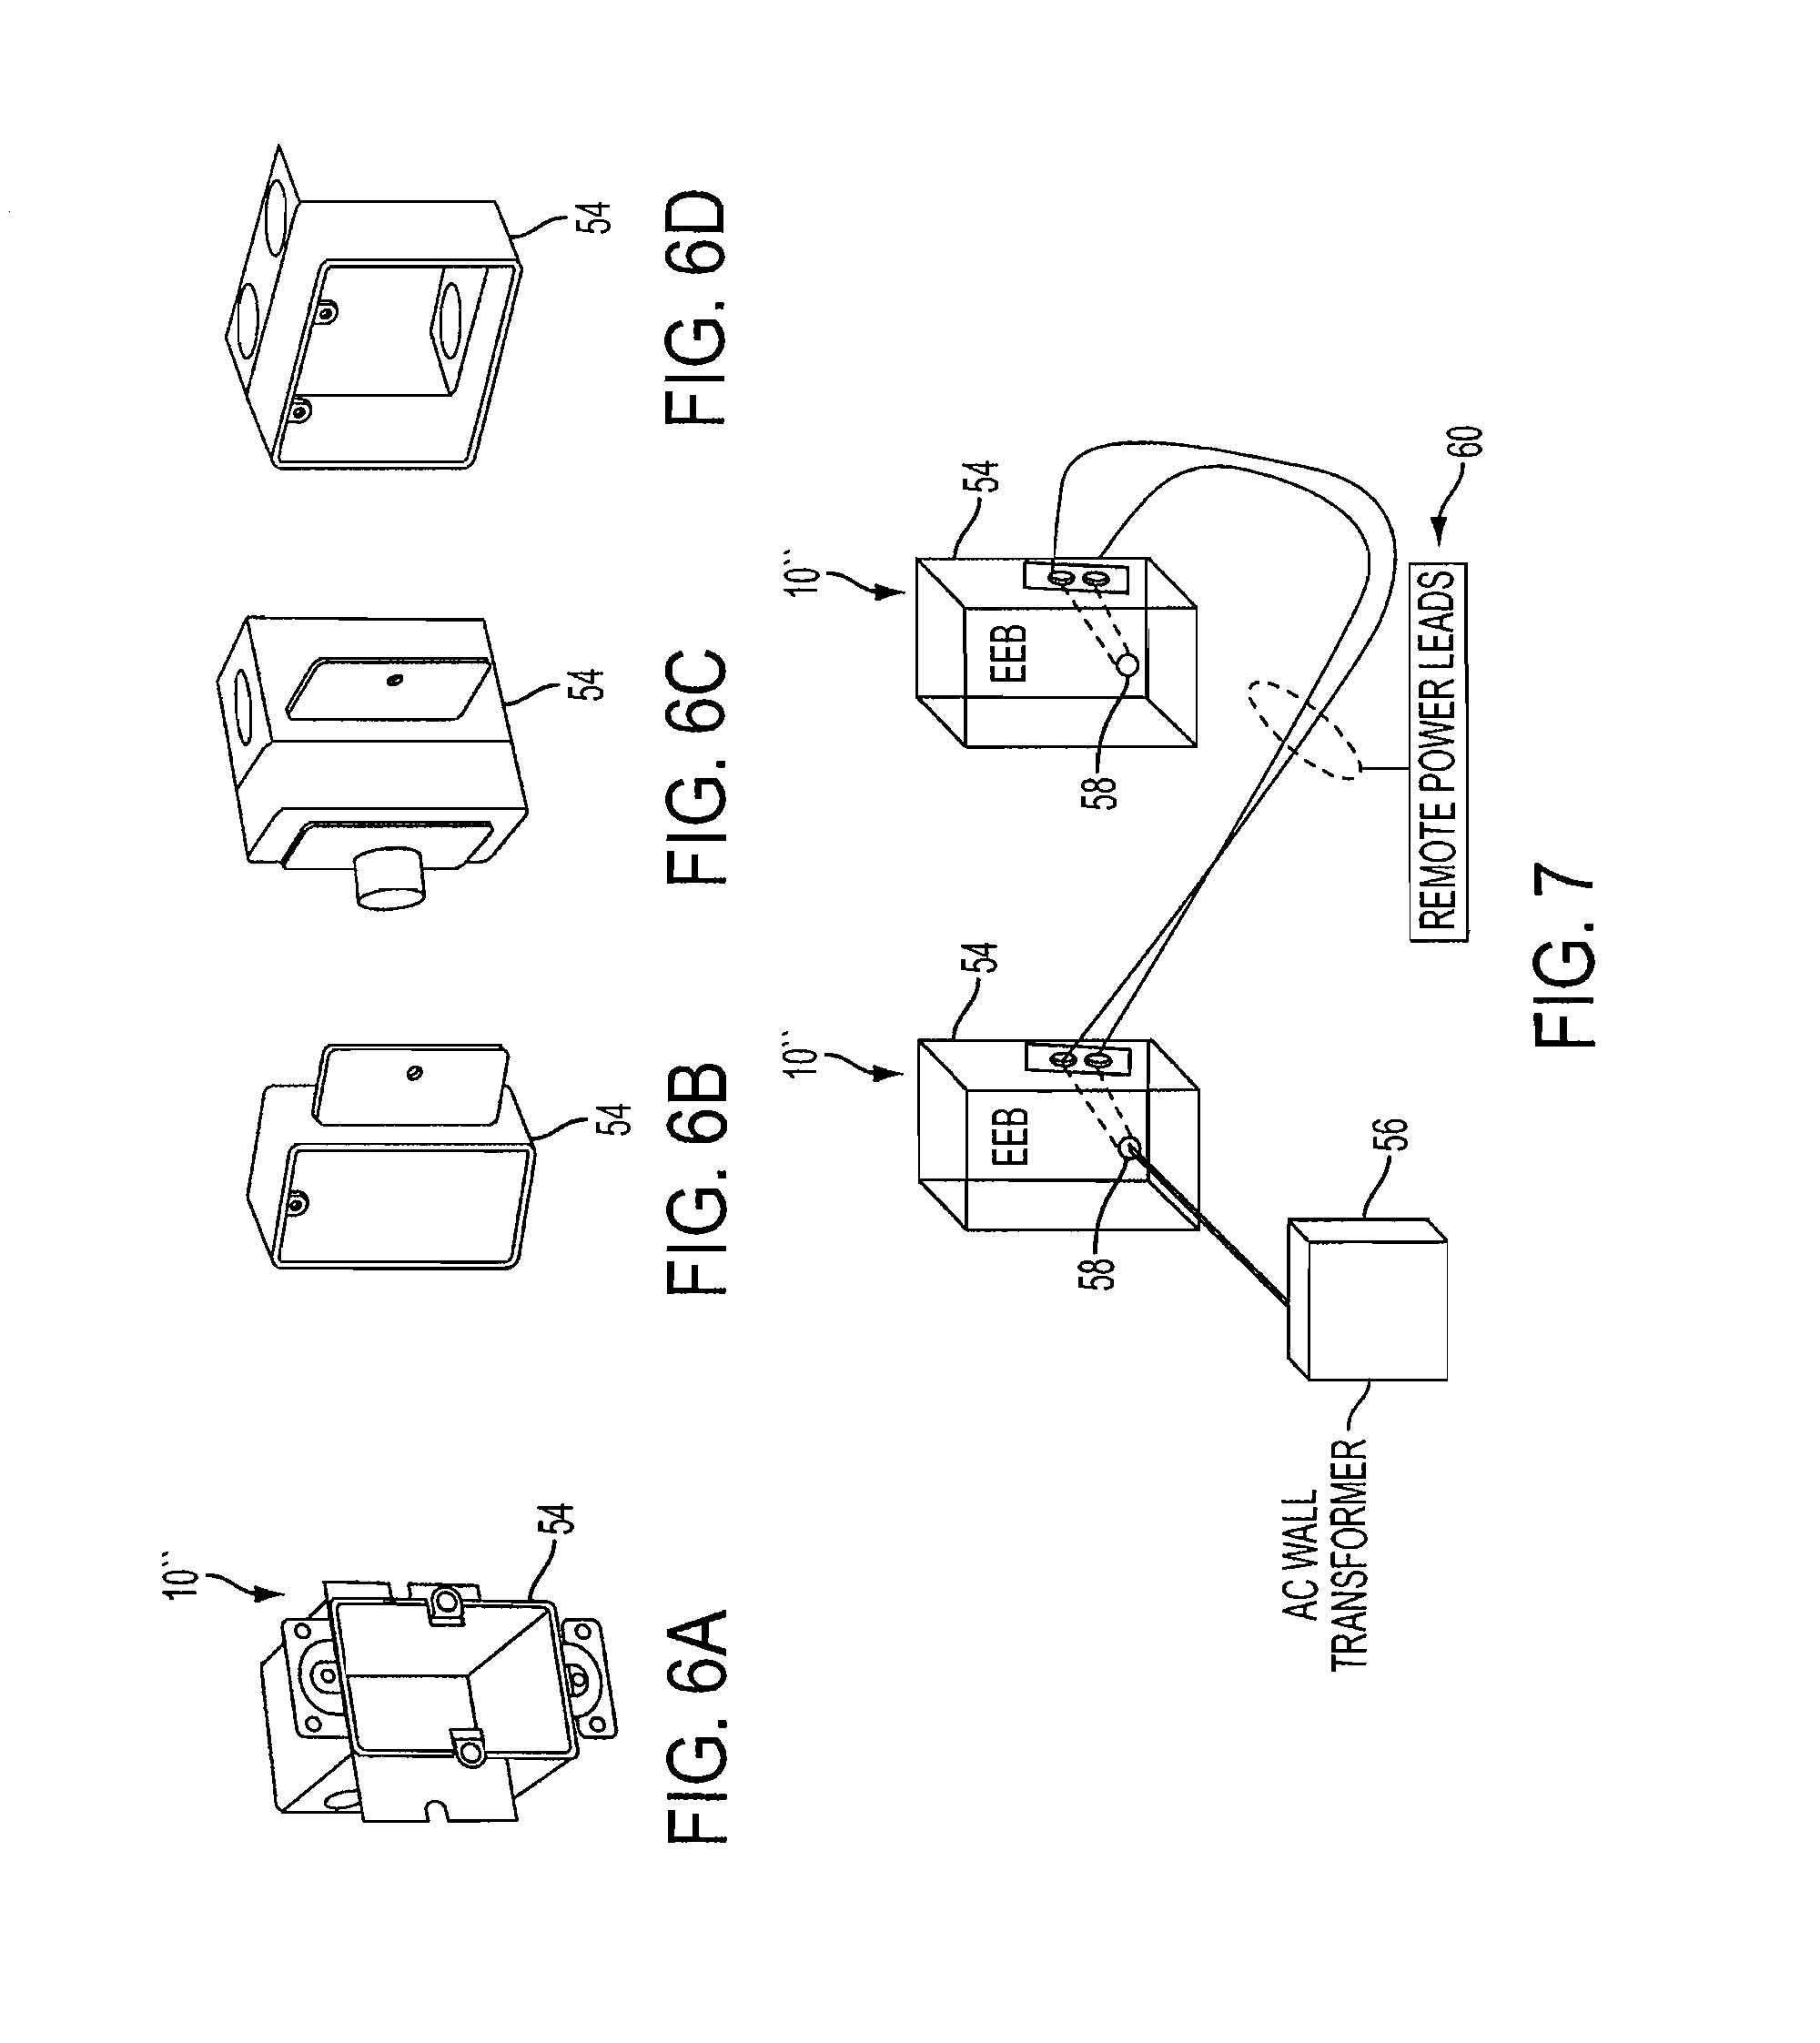 Patent Us8023642 Method For Extending Ethernet Over